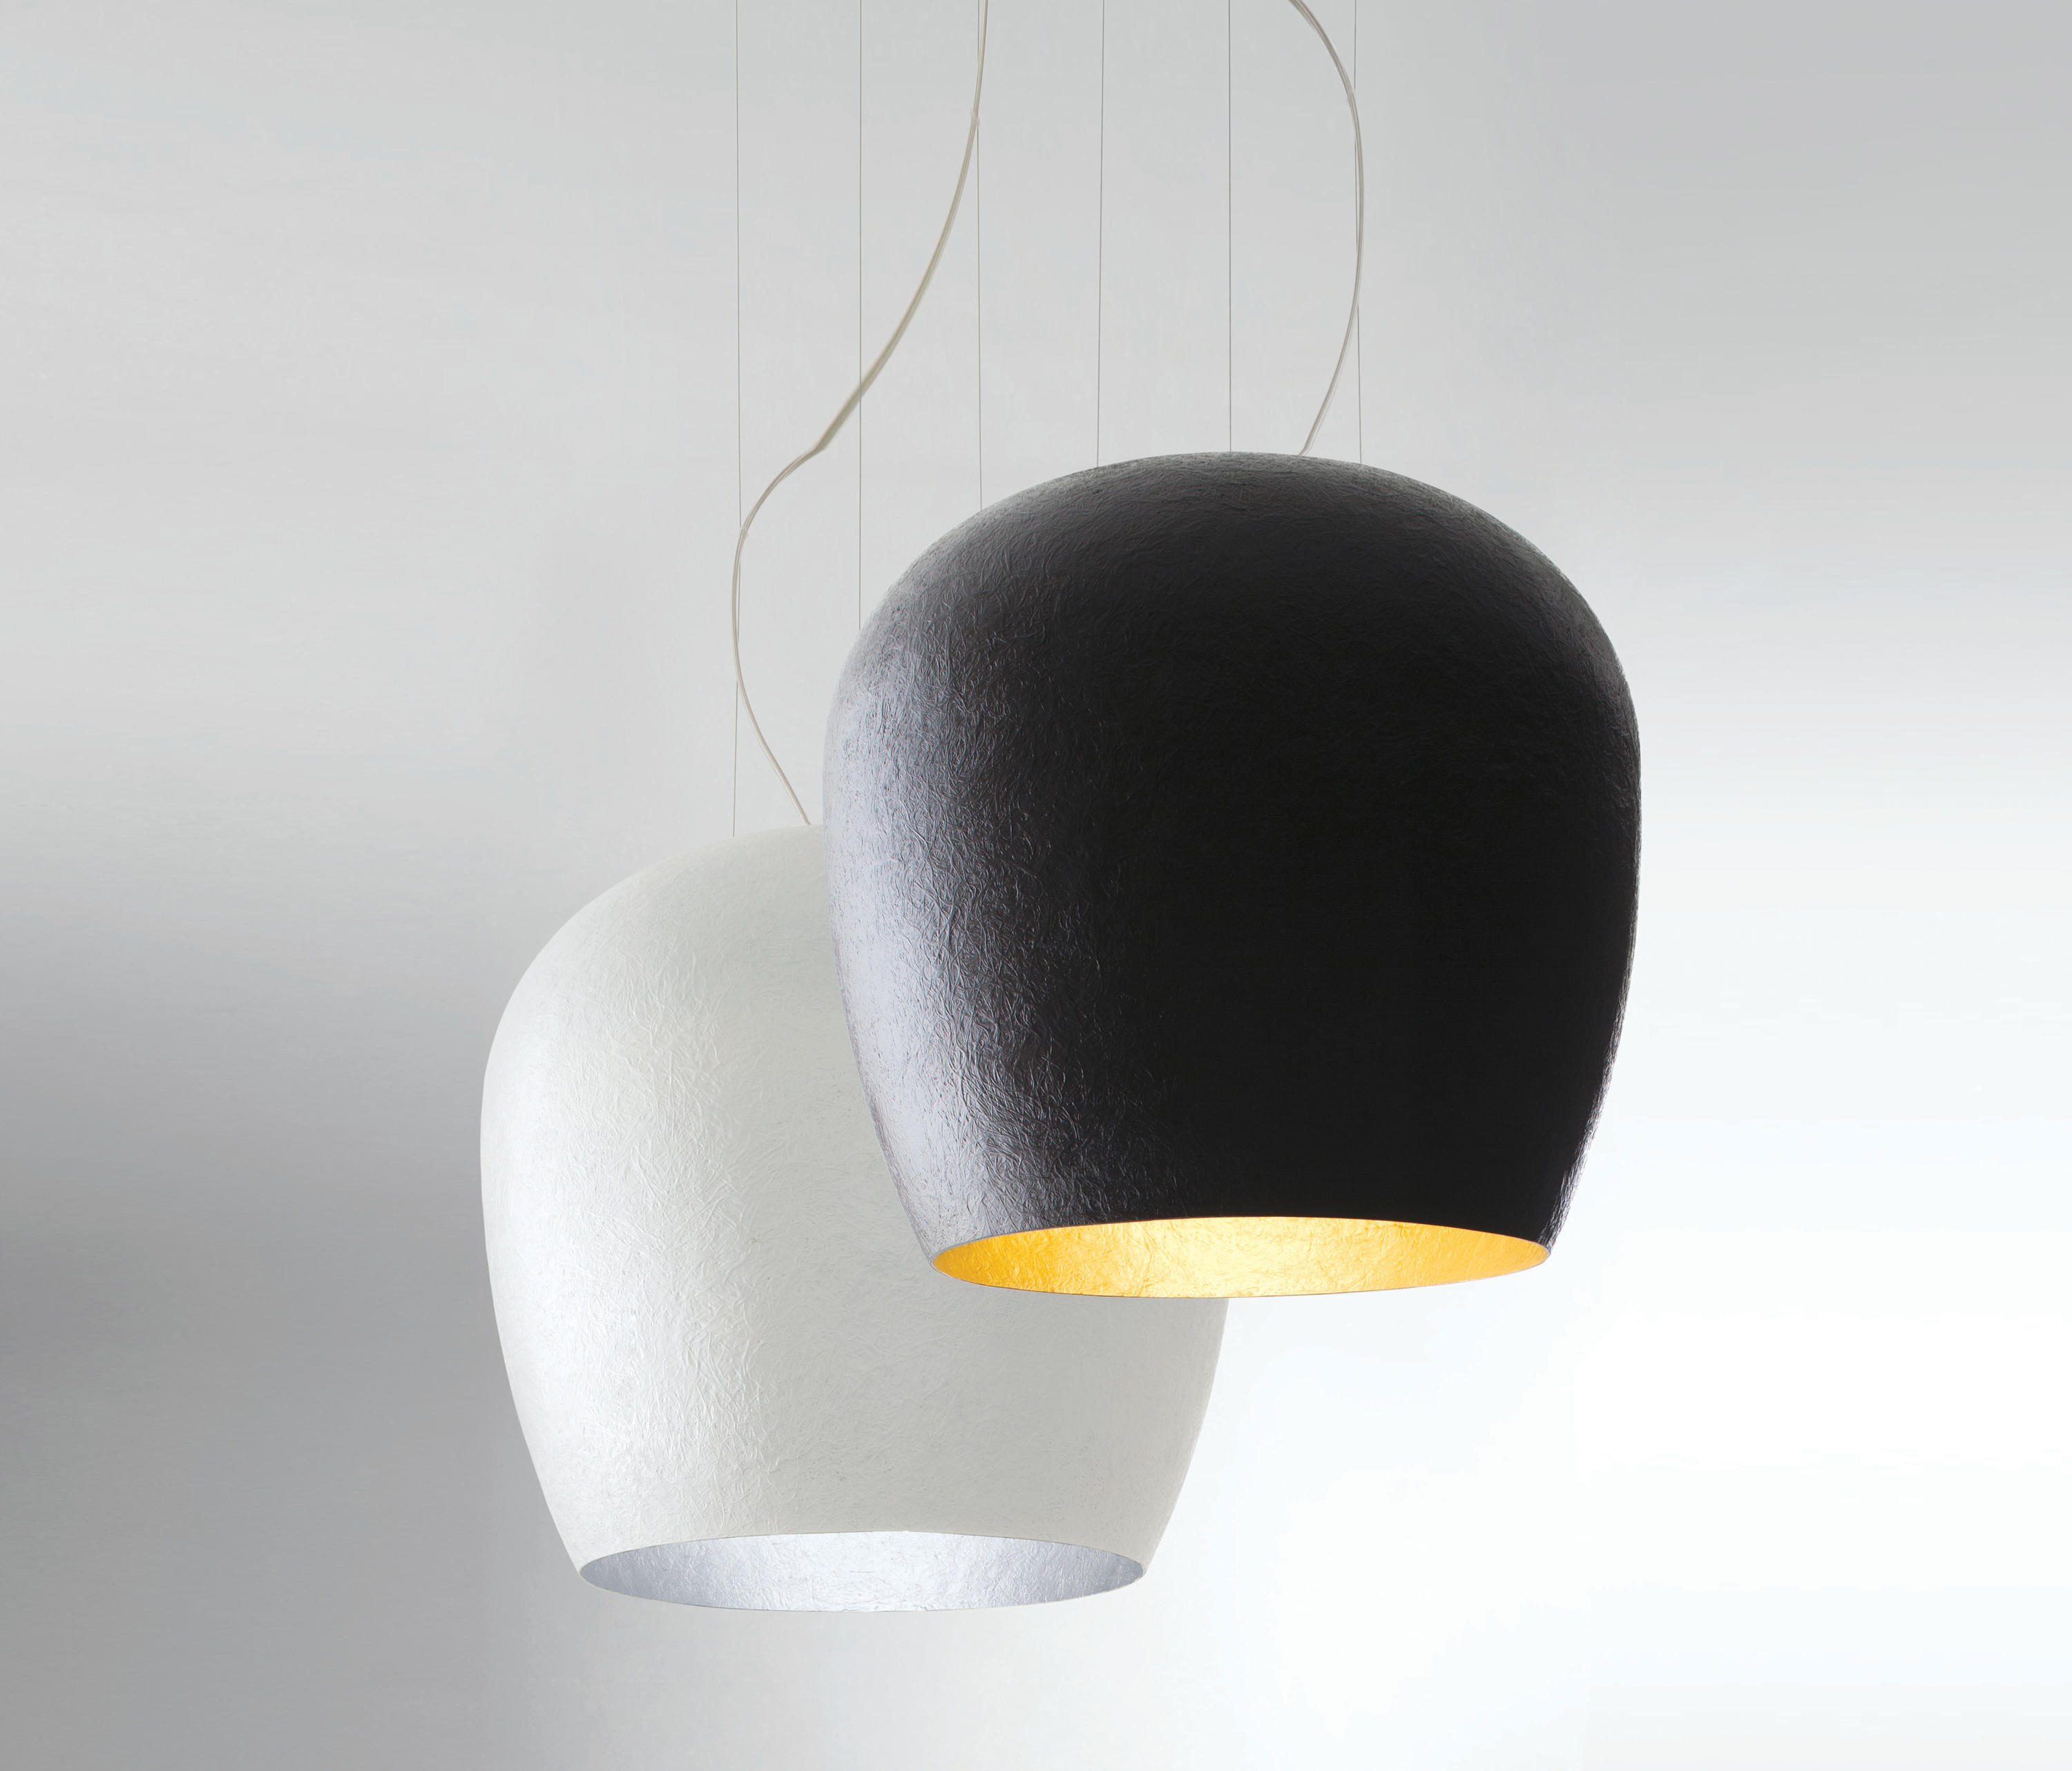 ... Hand Made by LUCENTE | General lighting ... & HAND MADE - General lighting from LUCENTE | Architonic azcodes.com